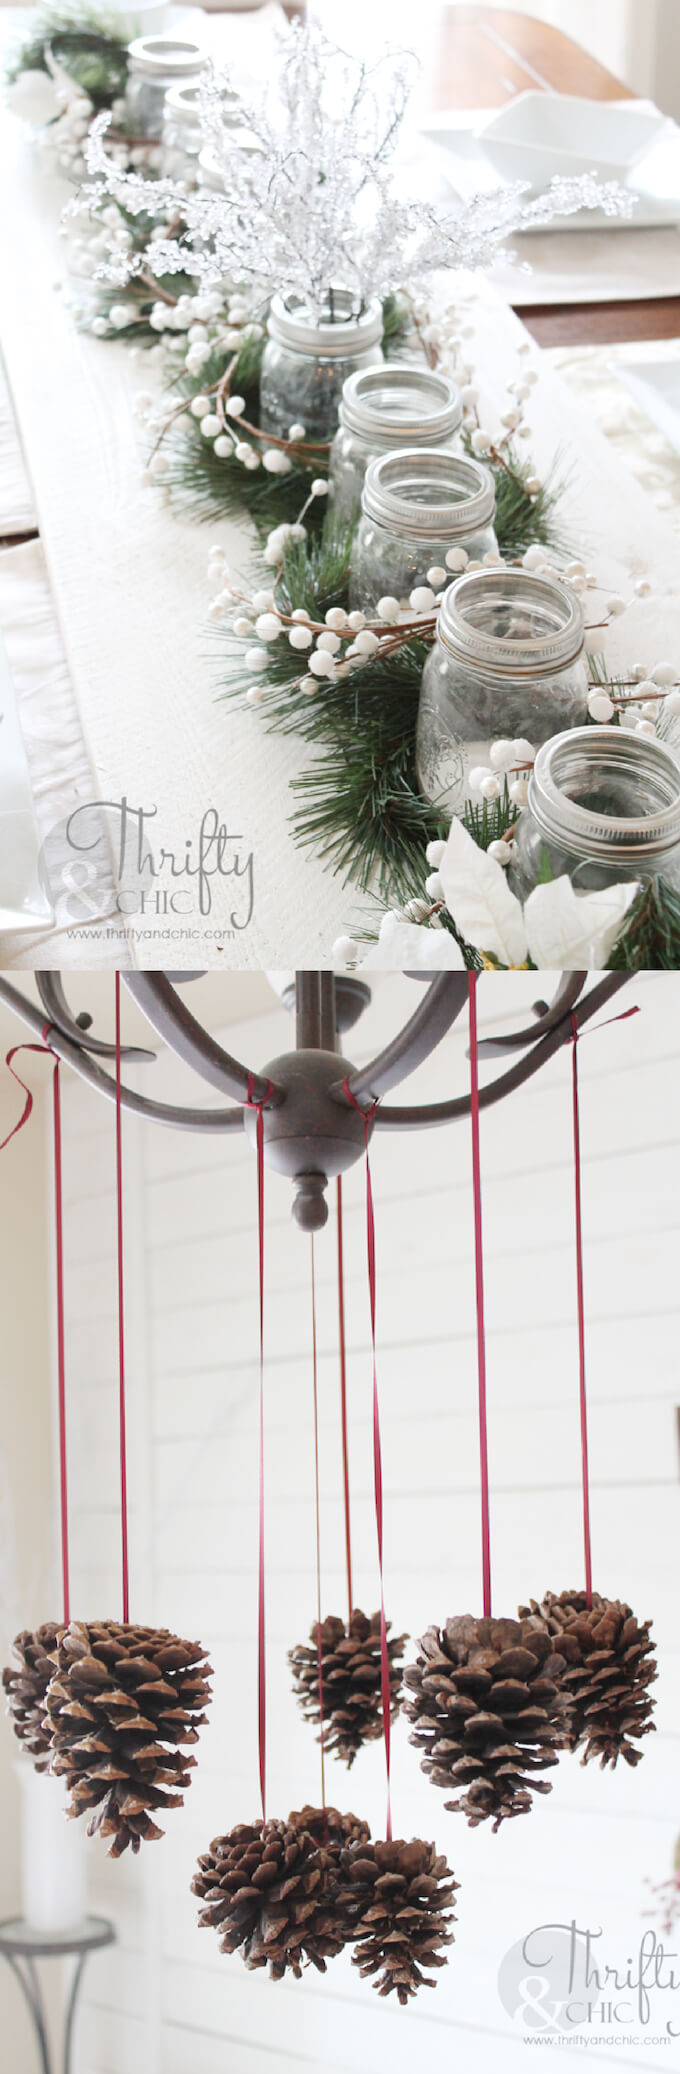 Thrifty & Chic | Best Elegant Christmas Centerpieces & Designs | Farmfoodfamily.com